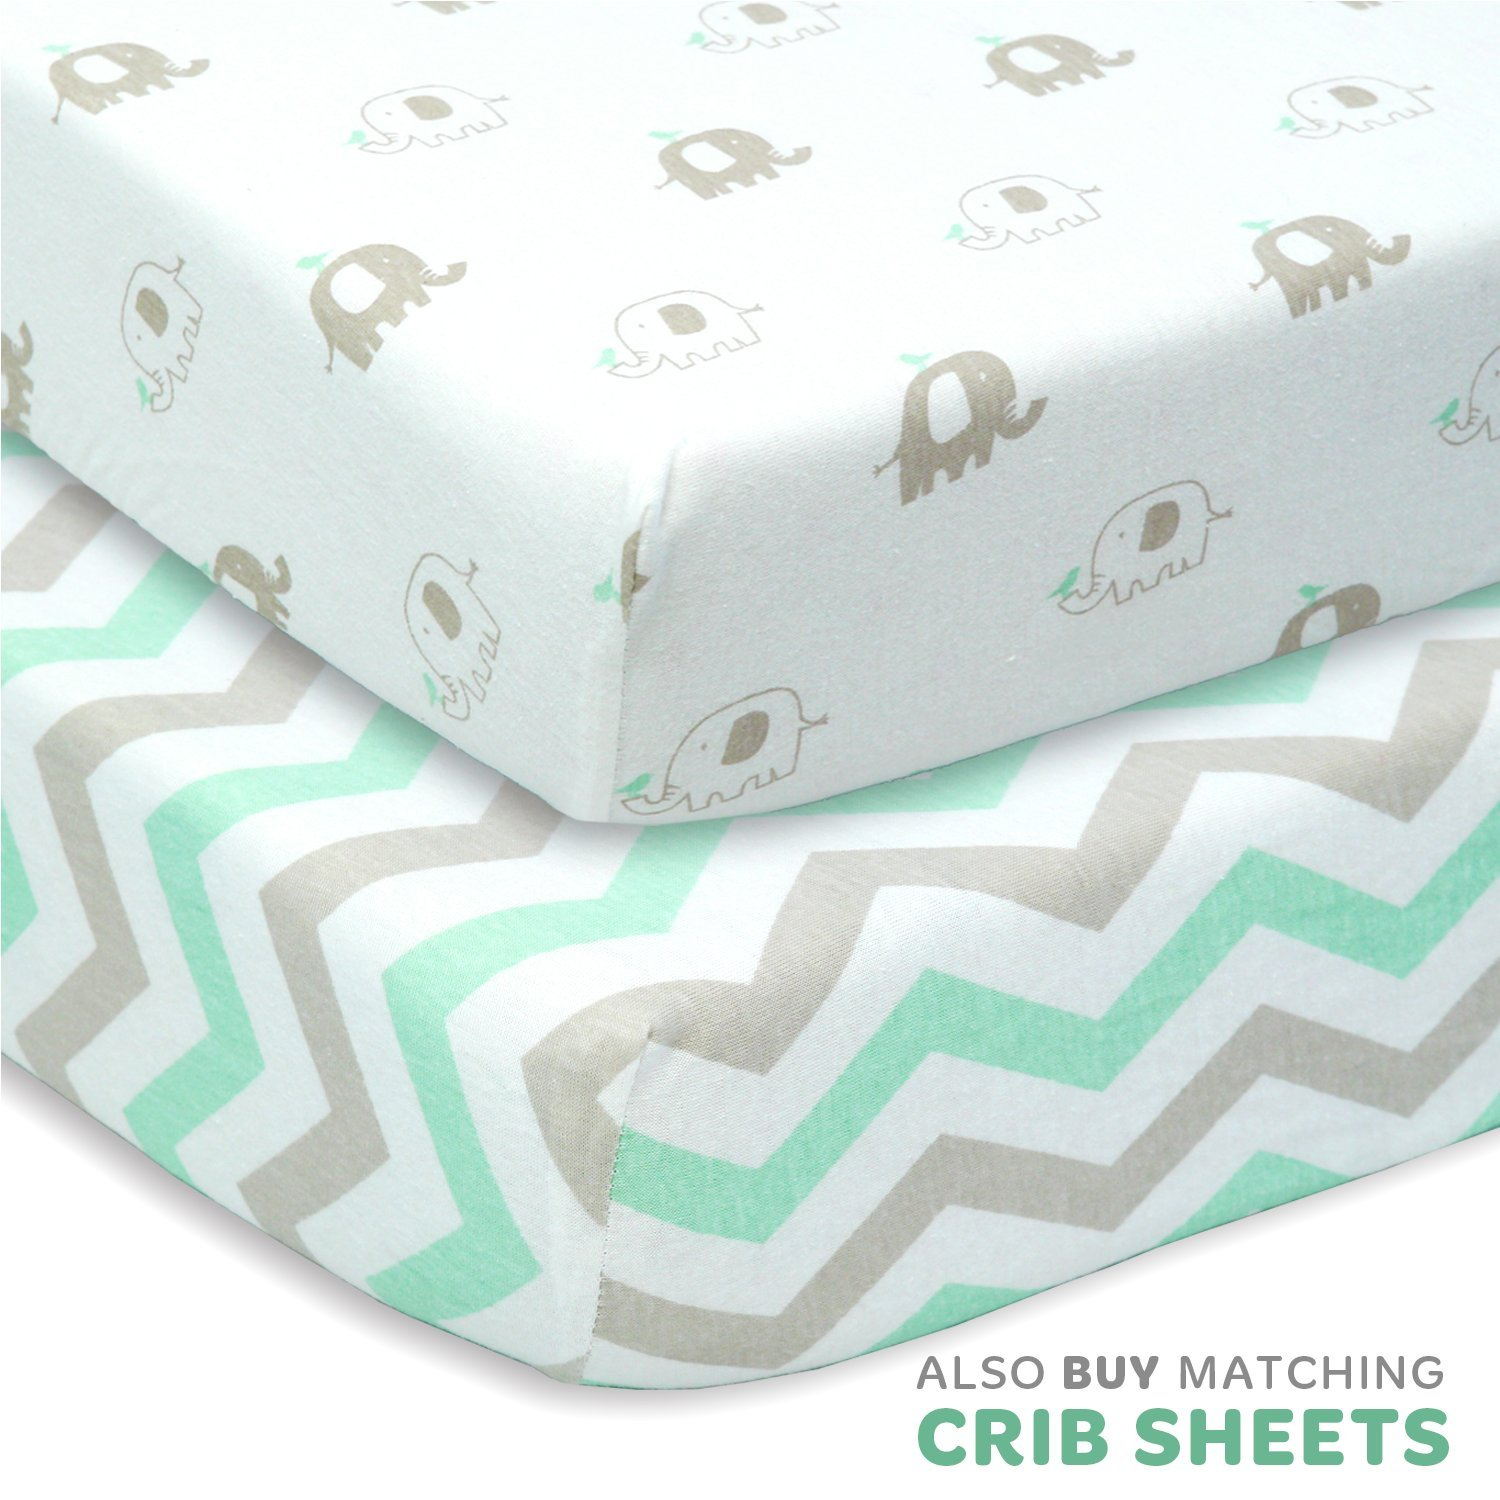 Changing Table Pad Covers Set for Baby Boy Or Girl | 2 Pack Extra Soft Jersey Cotton - Gray Stripes & Elephants - TOP Quality Nursery Bedding Cradle Sheets by Cuddly Cubs